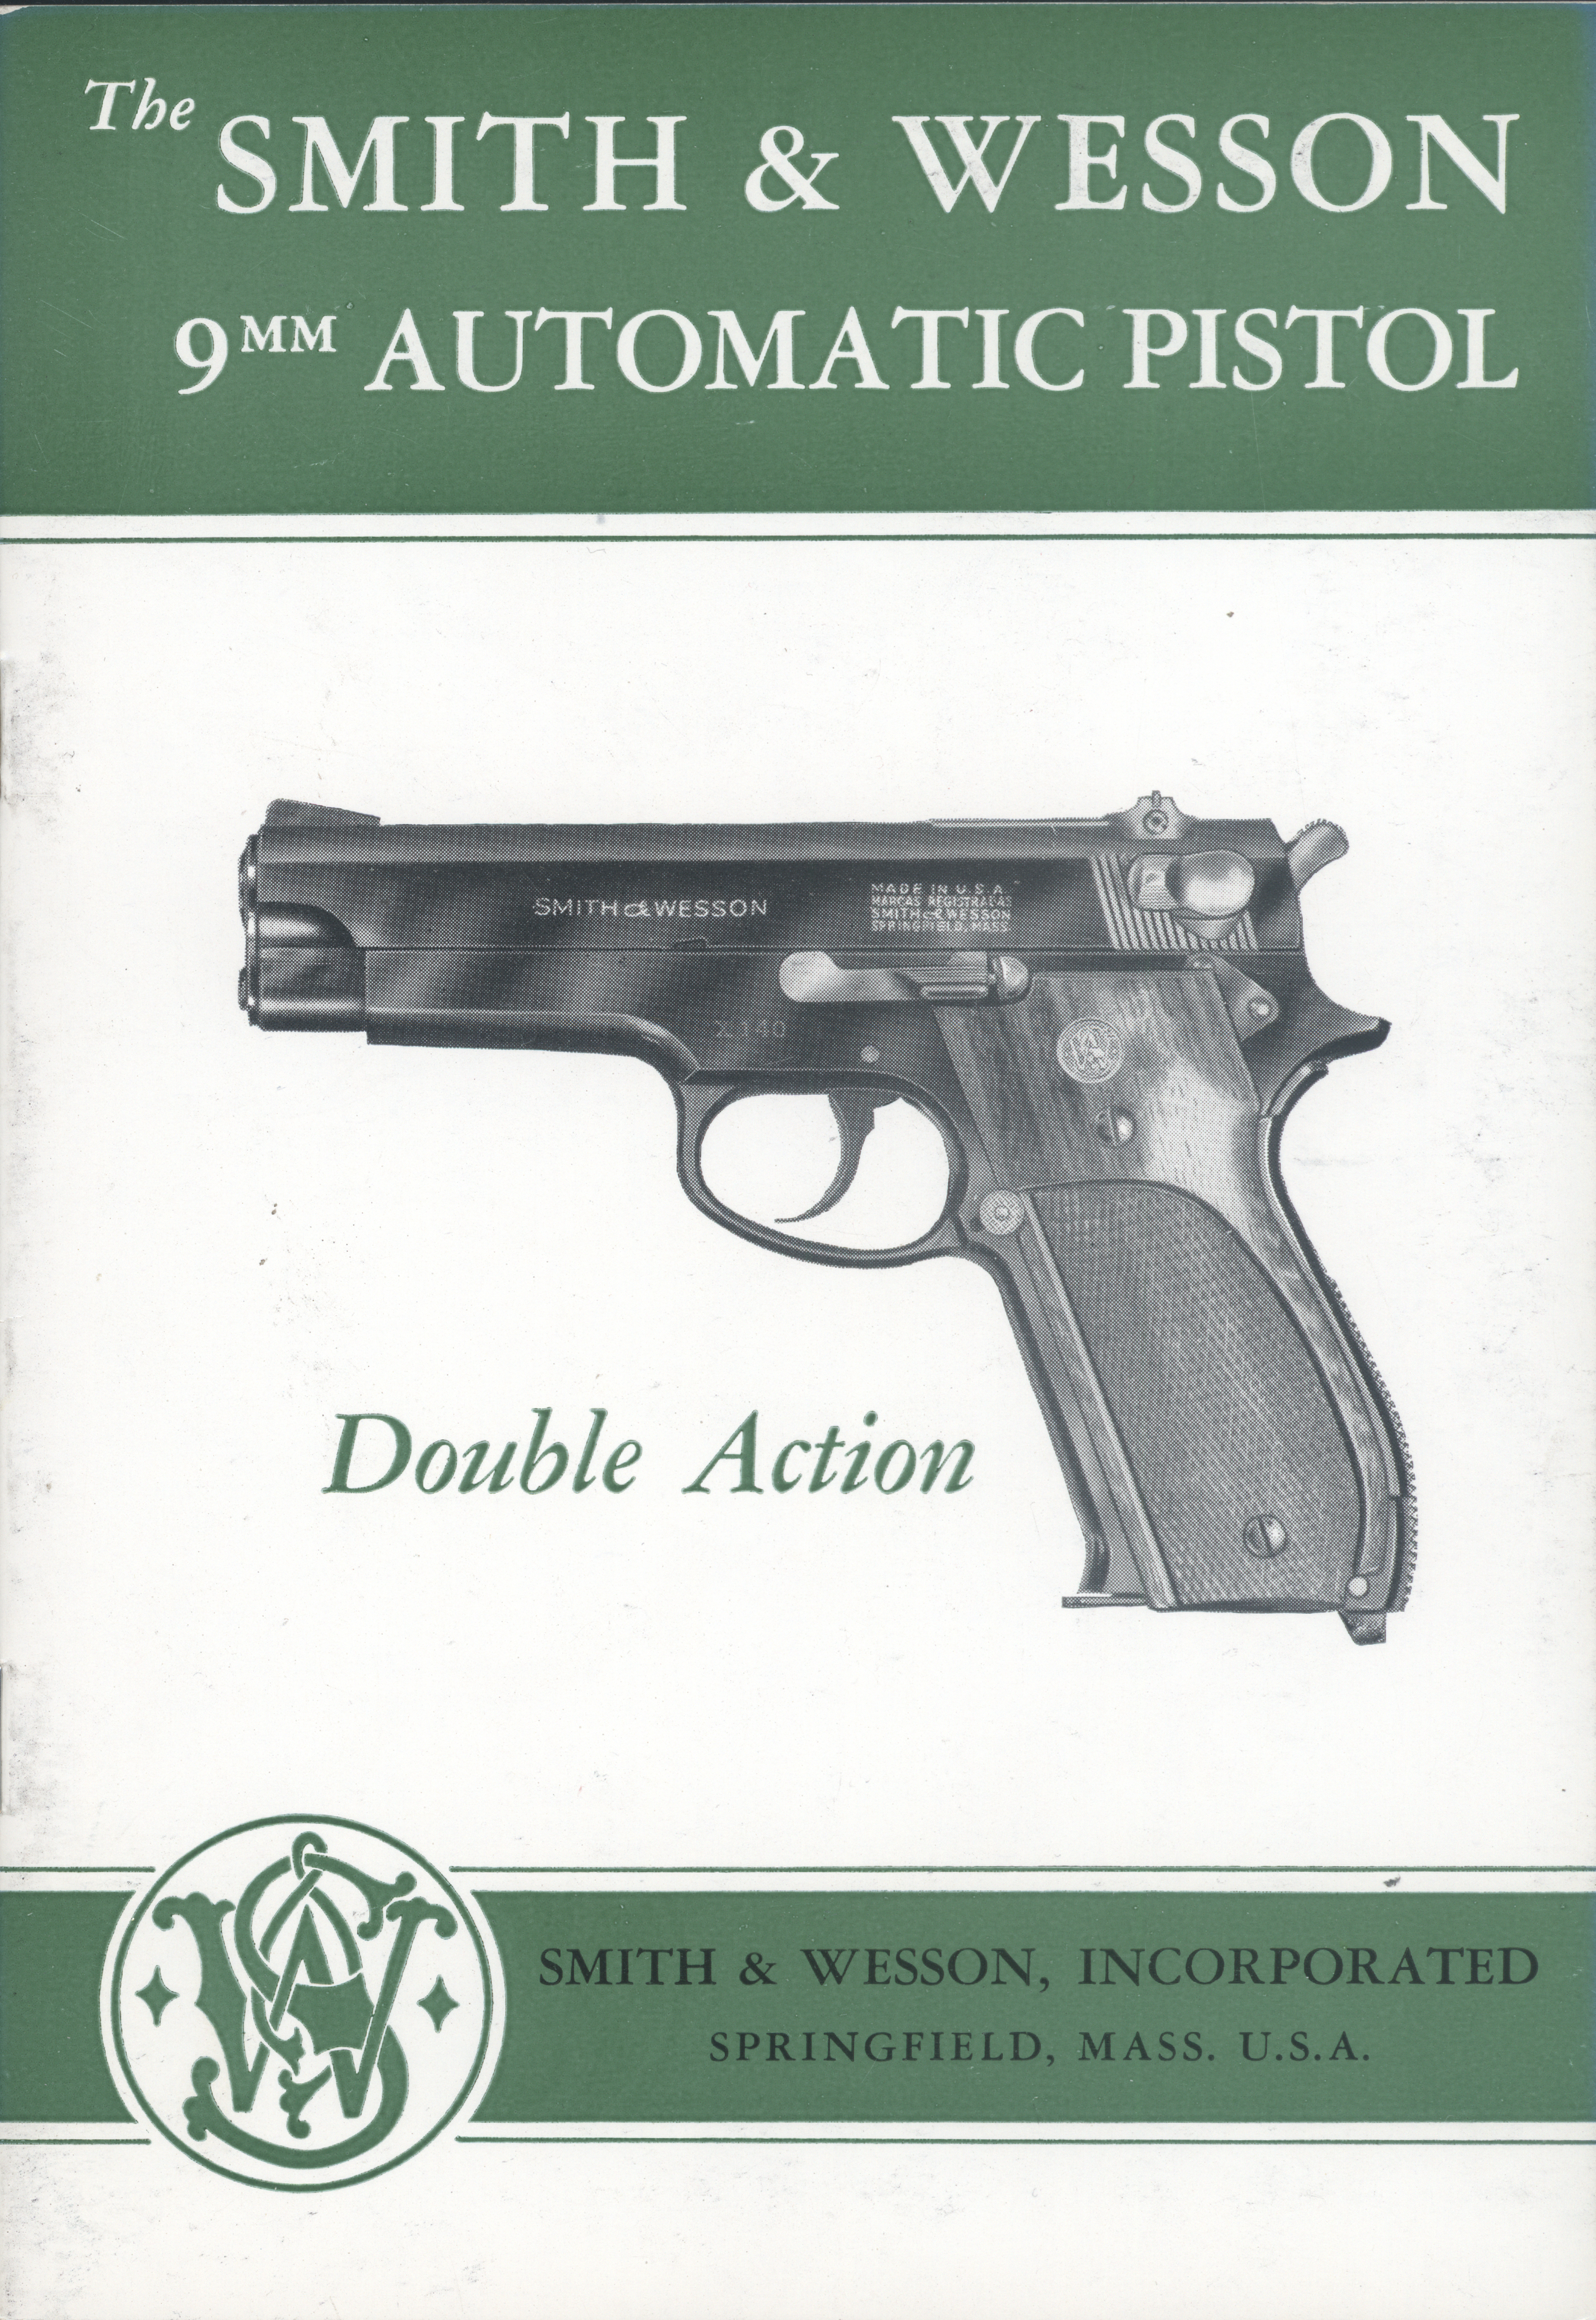 Smith & Wesson Year Of Manufacture By Serial Number